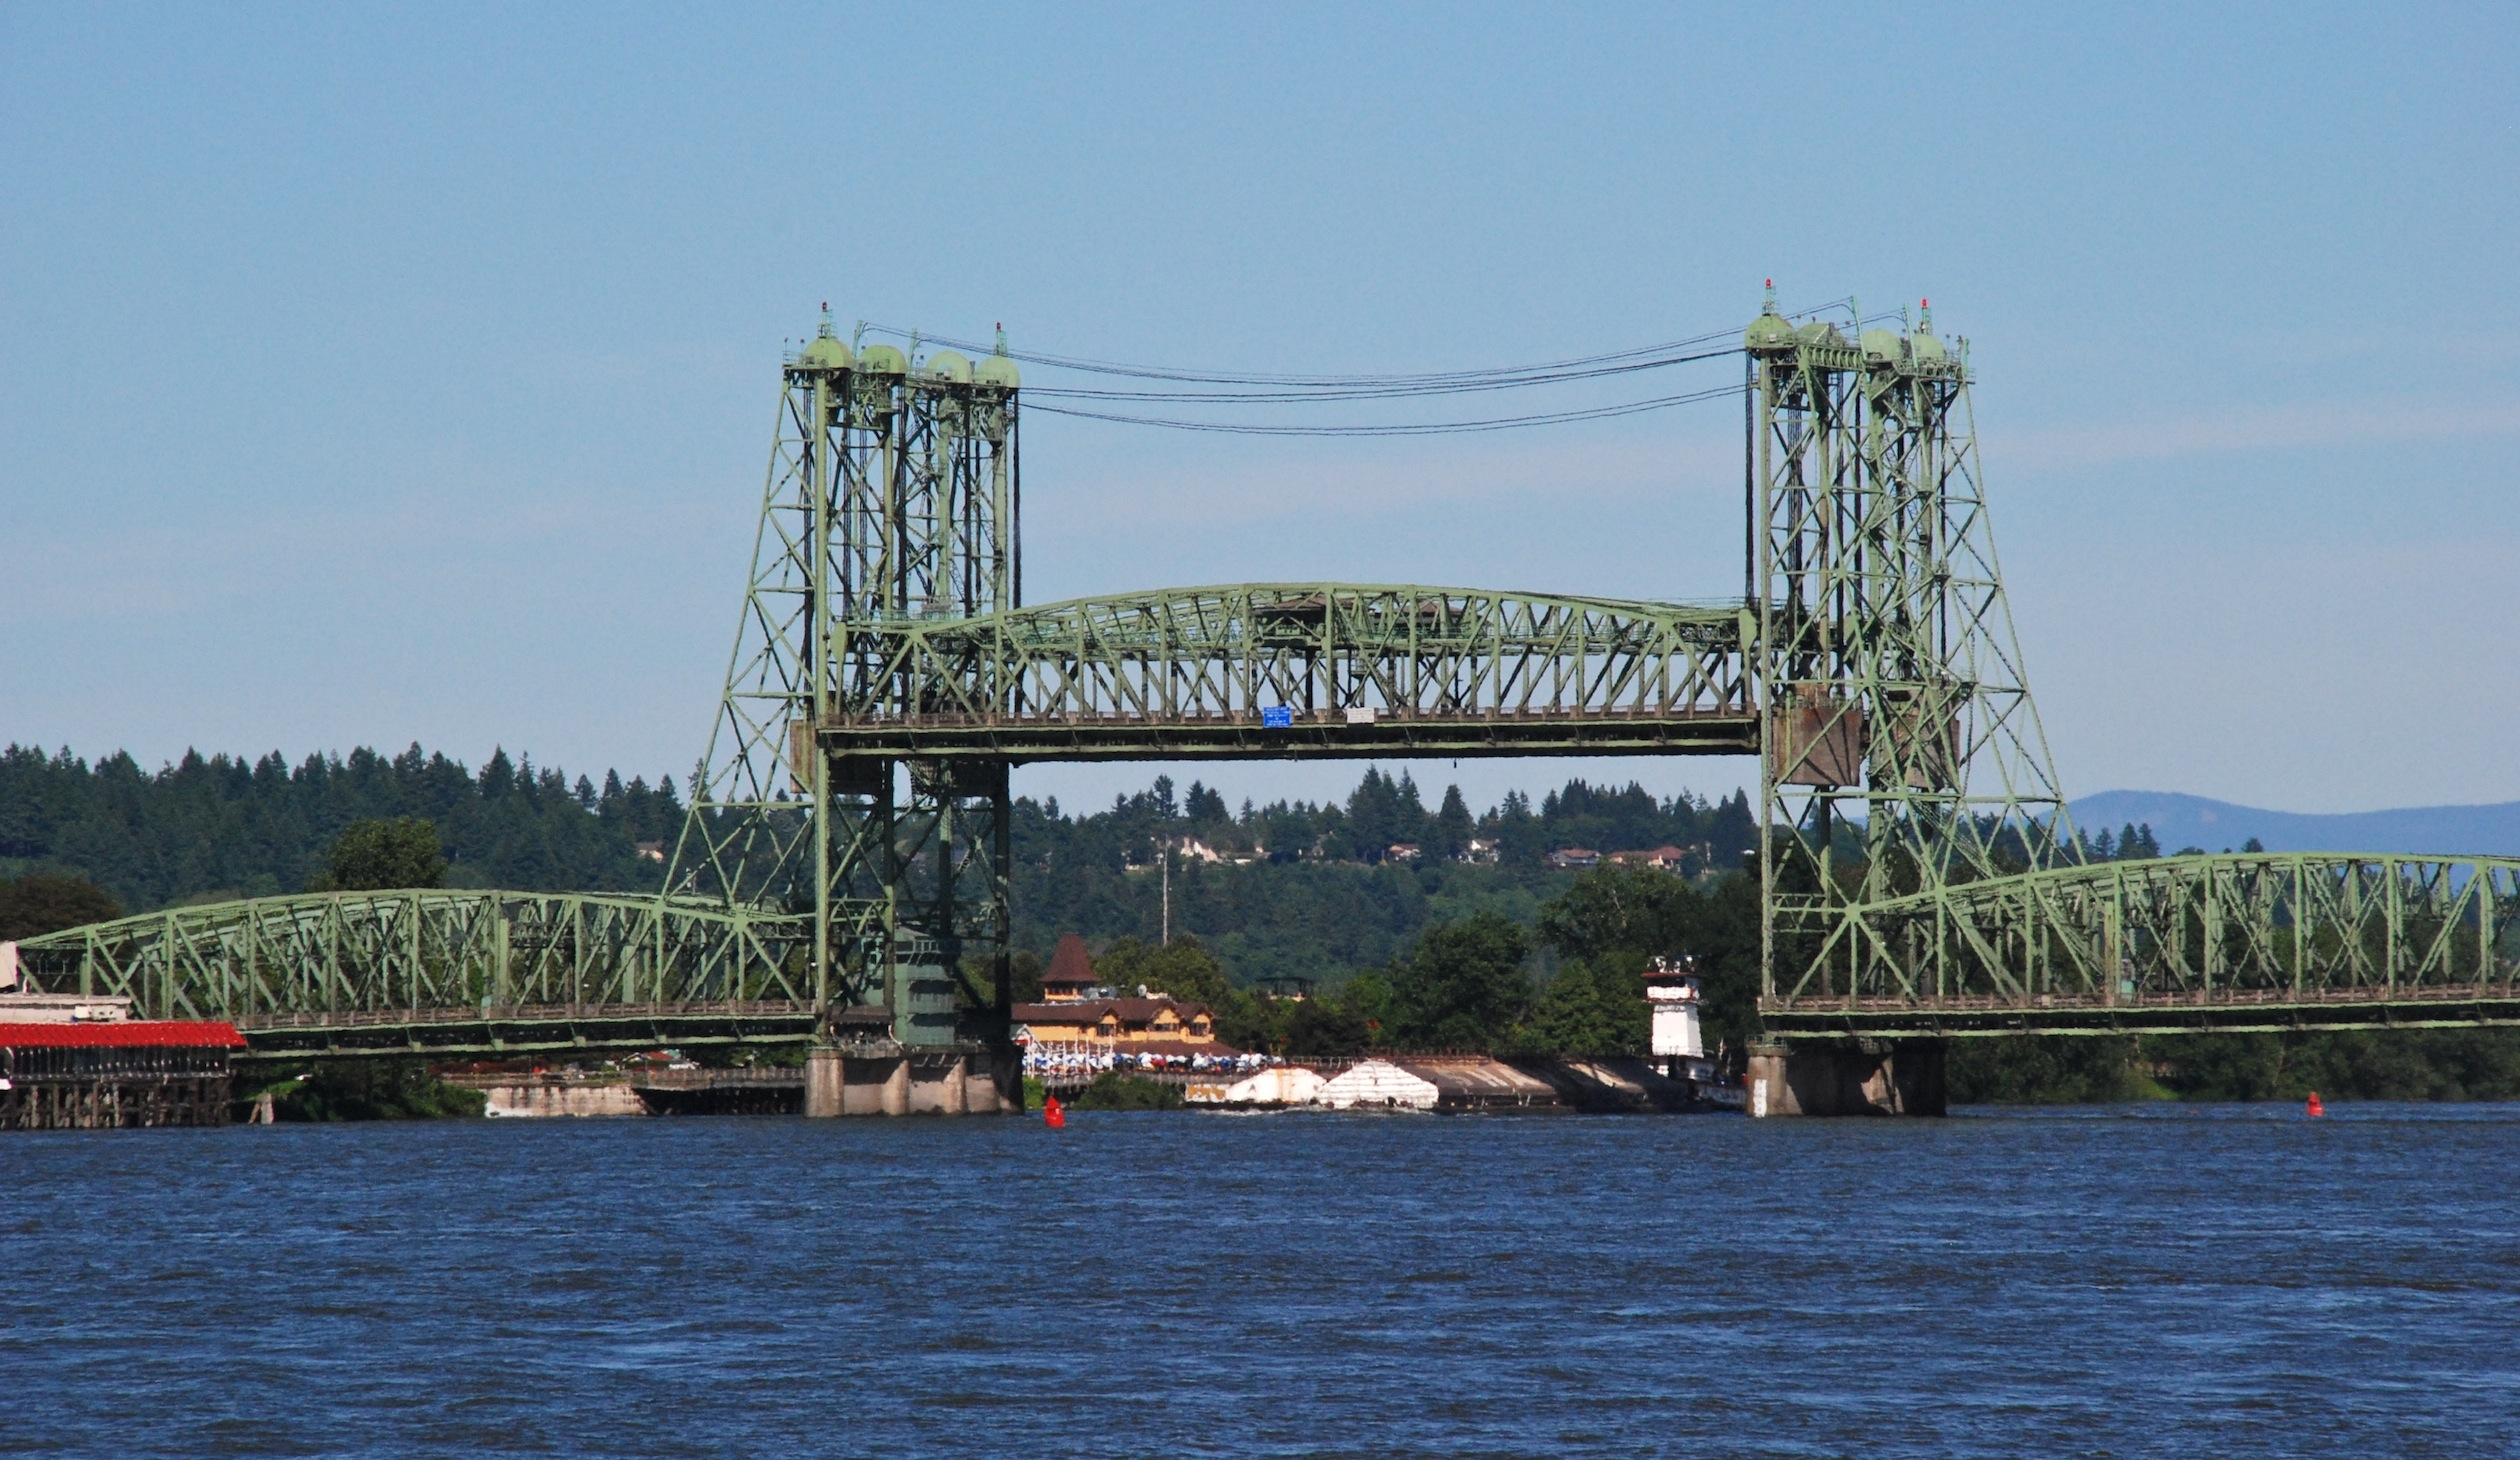 File:Interstate Br lift span raised, barge passing under.jpg ...